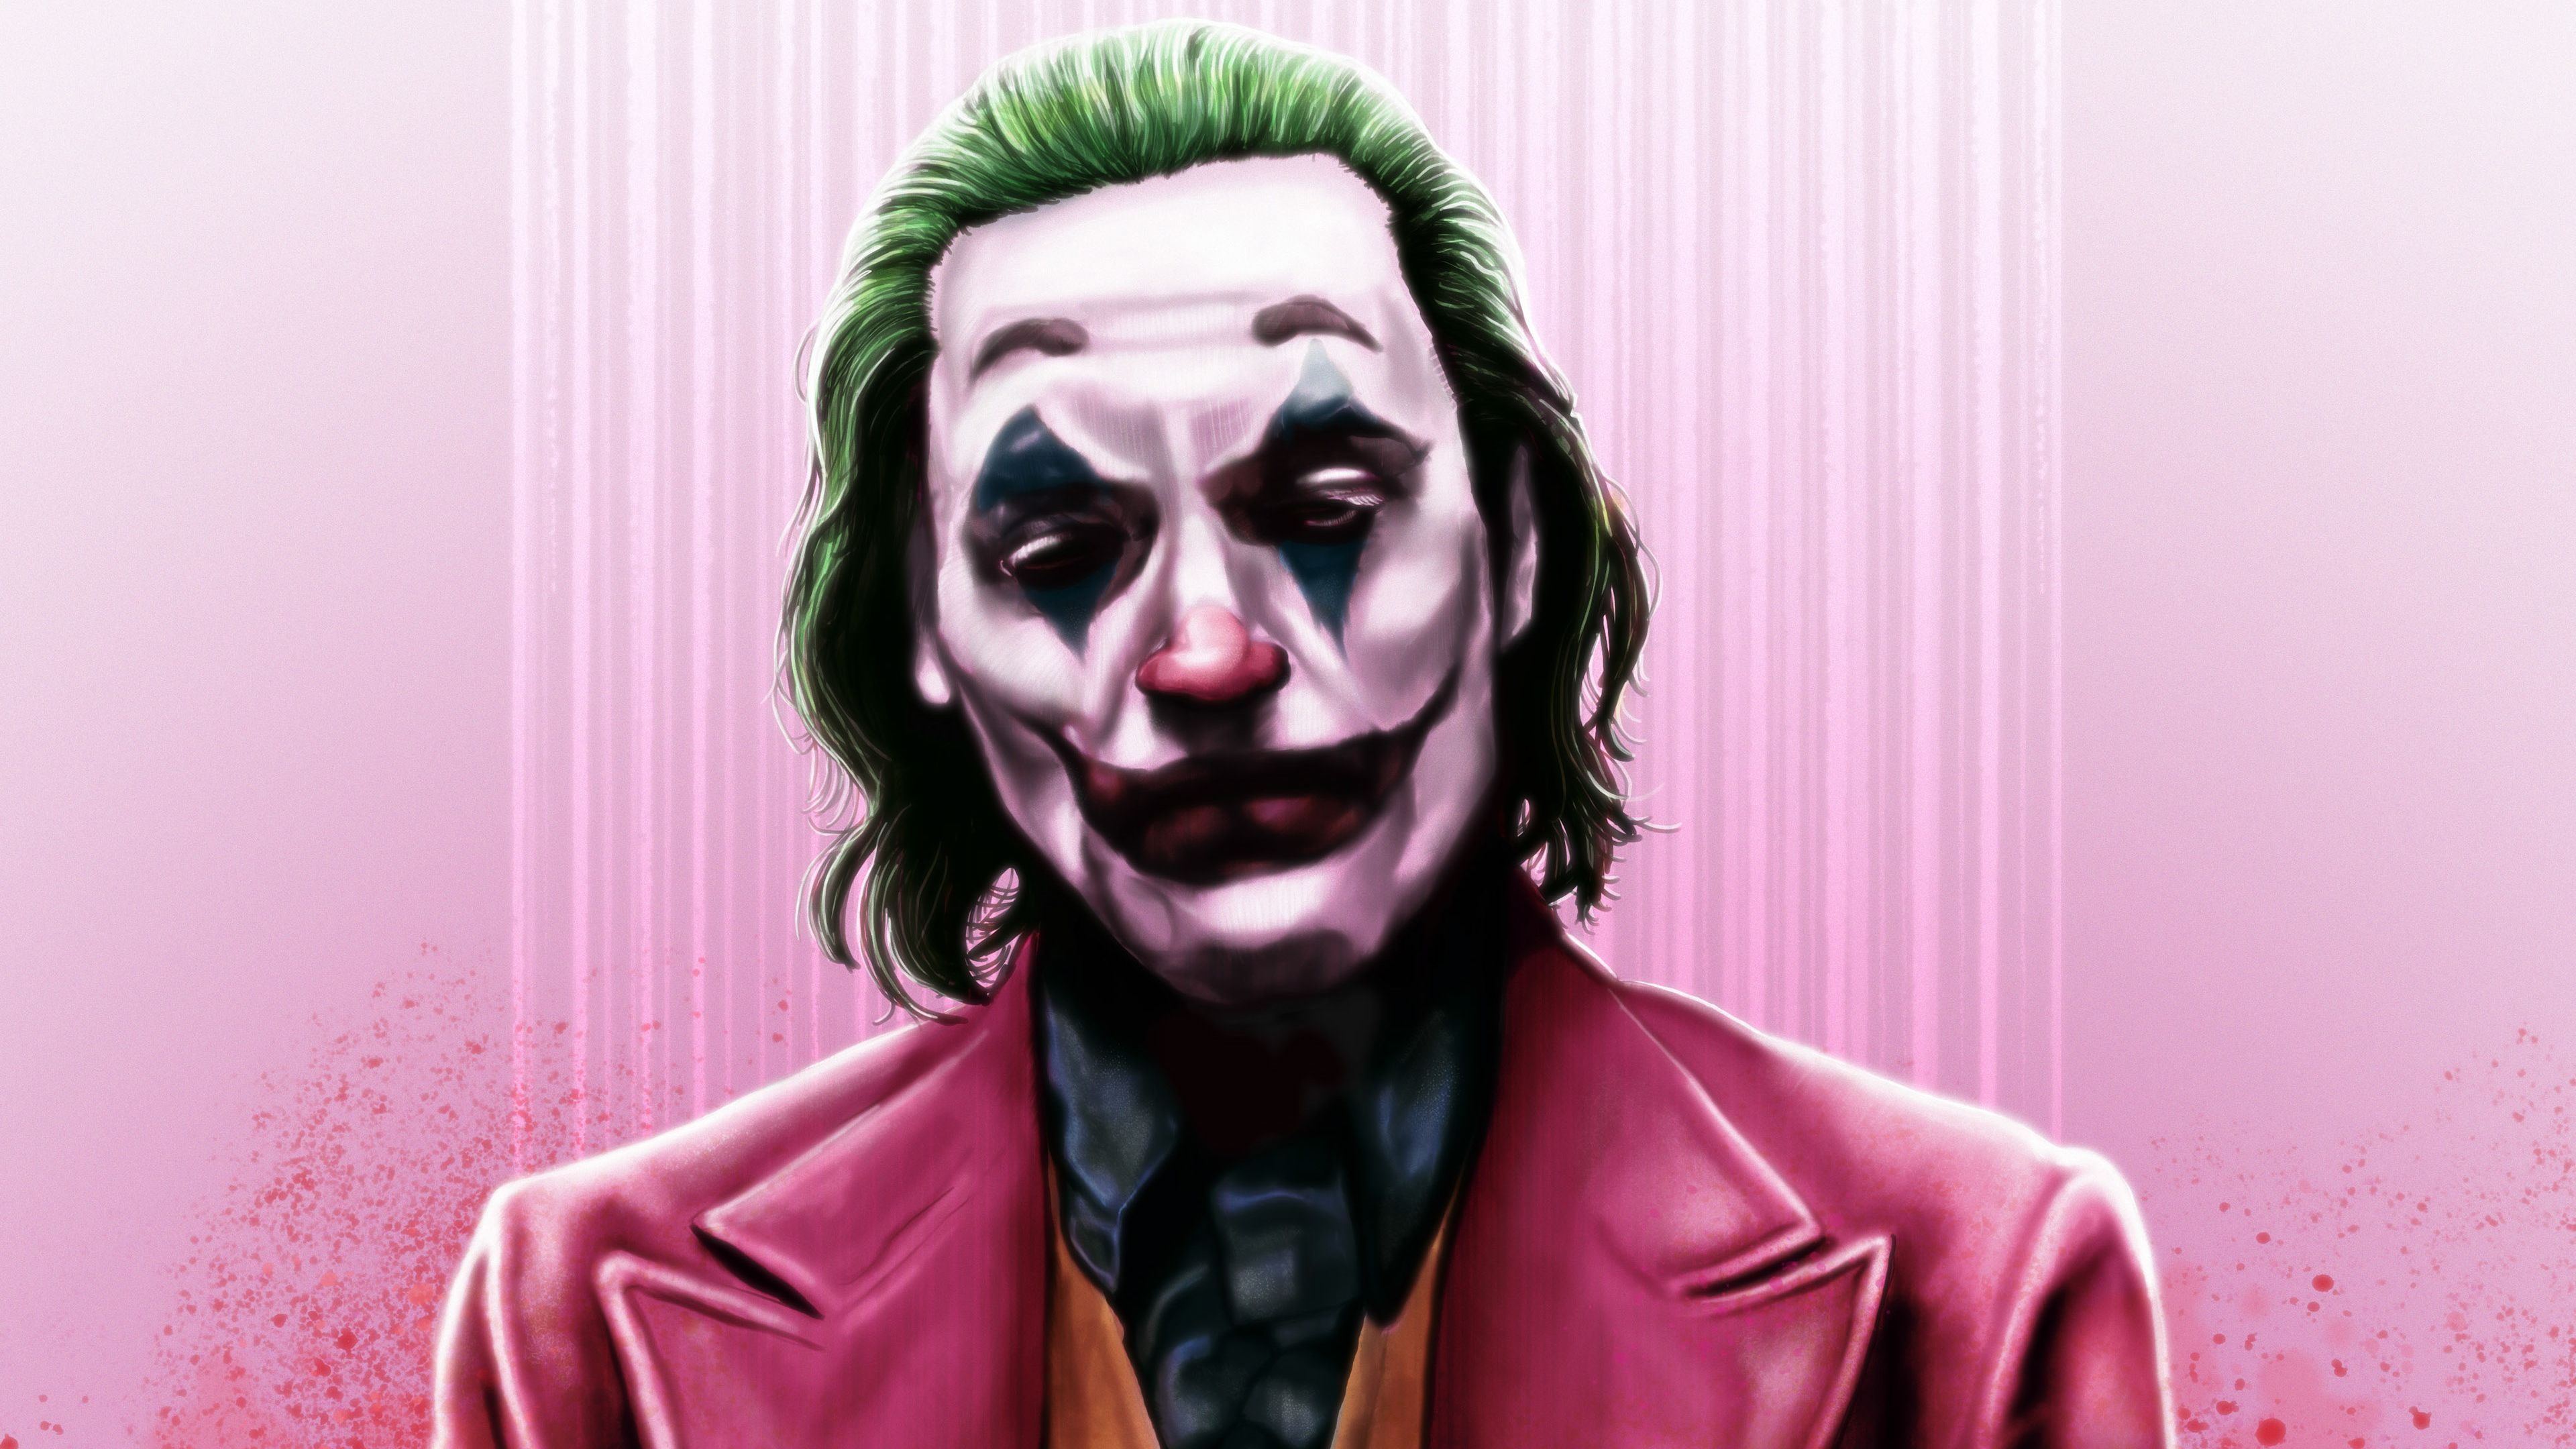 Joker Joaquin Phoenix 4k Art supervillain wallpapers, superheroes